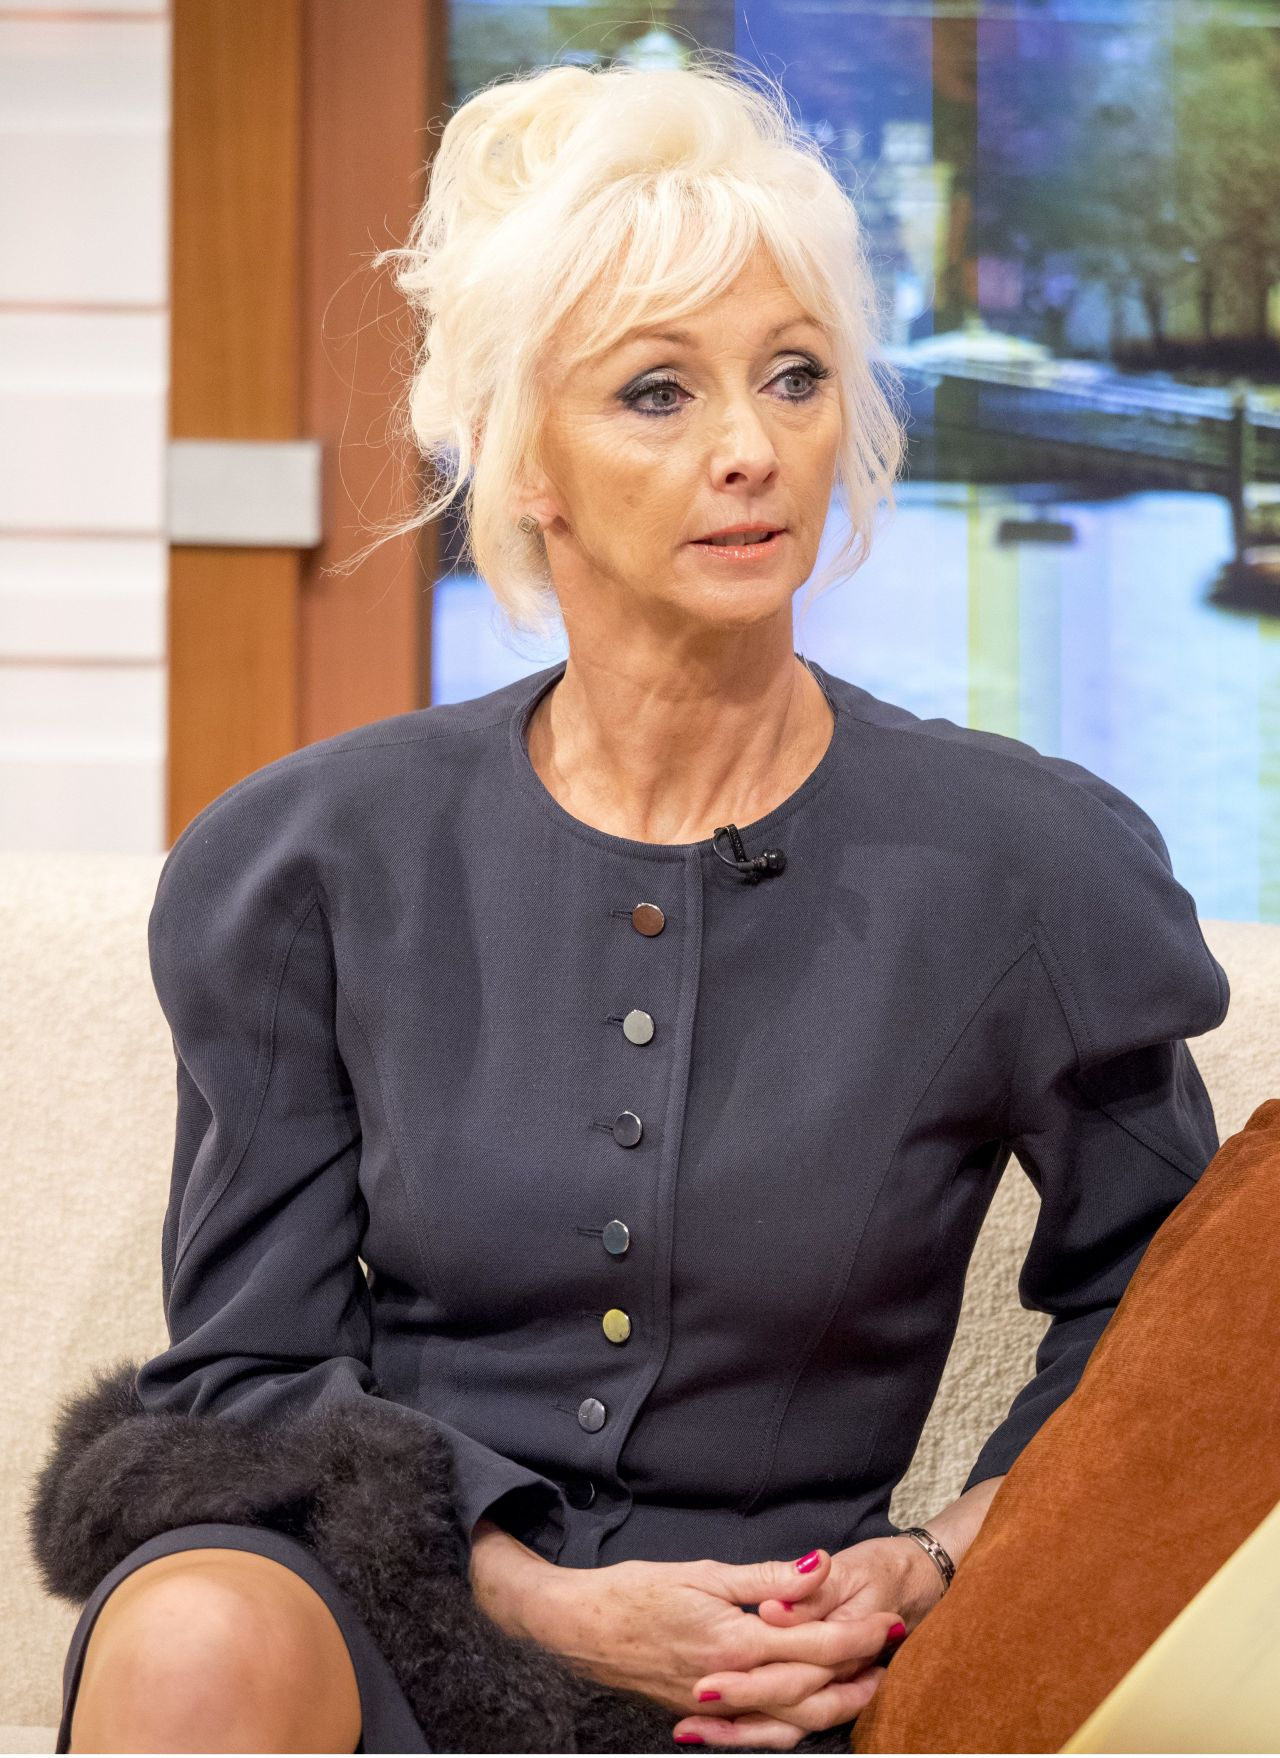 Debbie Mcgee Appeared On Good Morning Britain Tv Show In